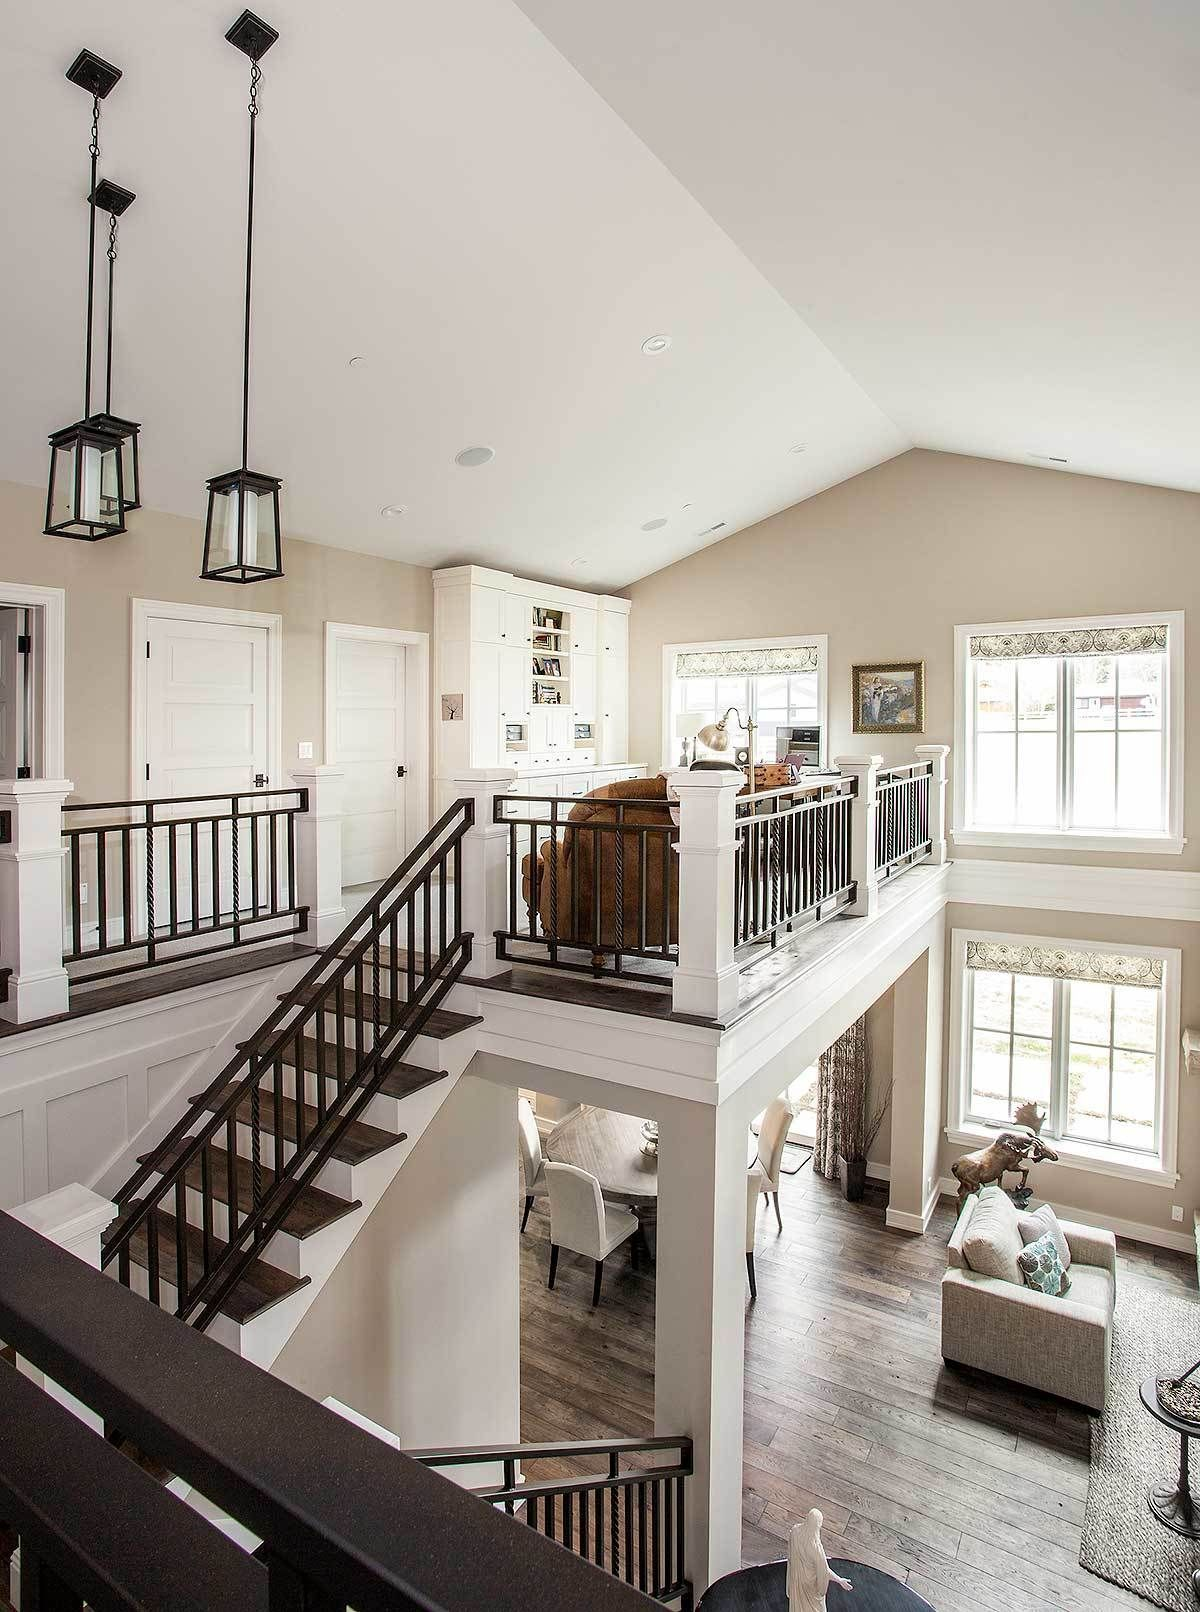 Pin By Bickimer Homes On Model Homes: 13 Living Room Design May Help Your Home With A New Look